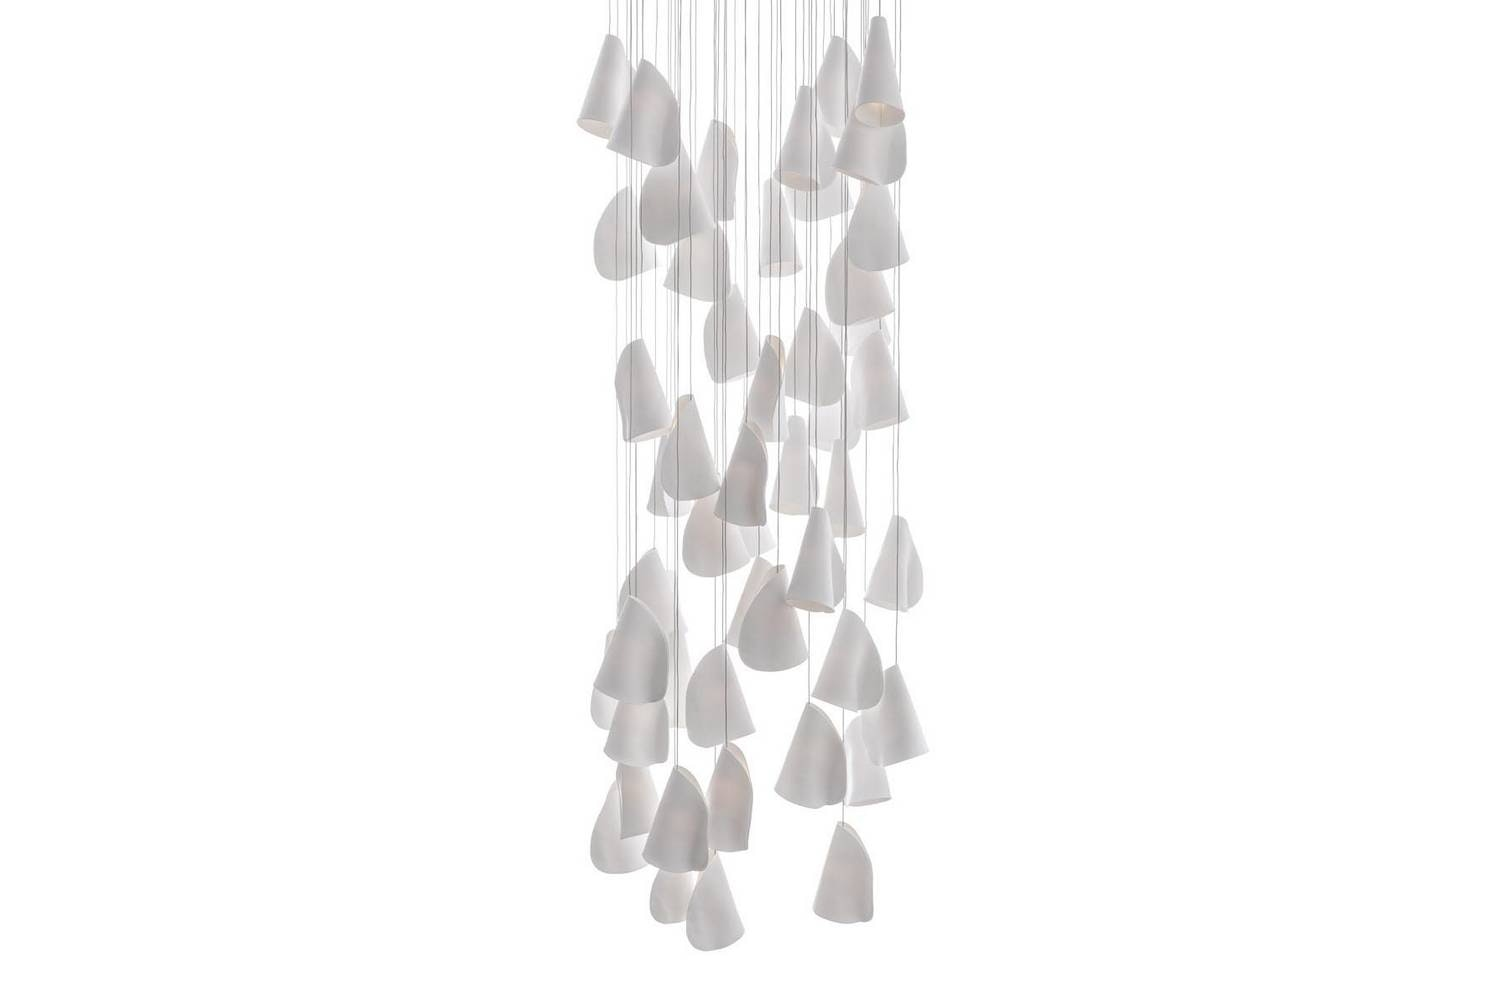 21.50 Standard Suspension Lamp by Omer Arbel for Bocci